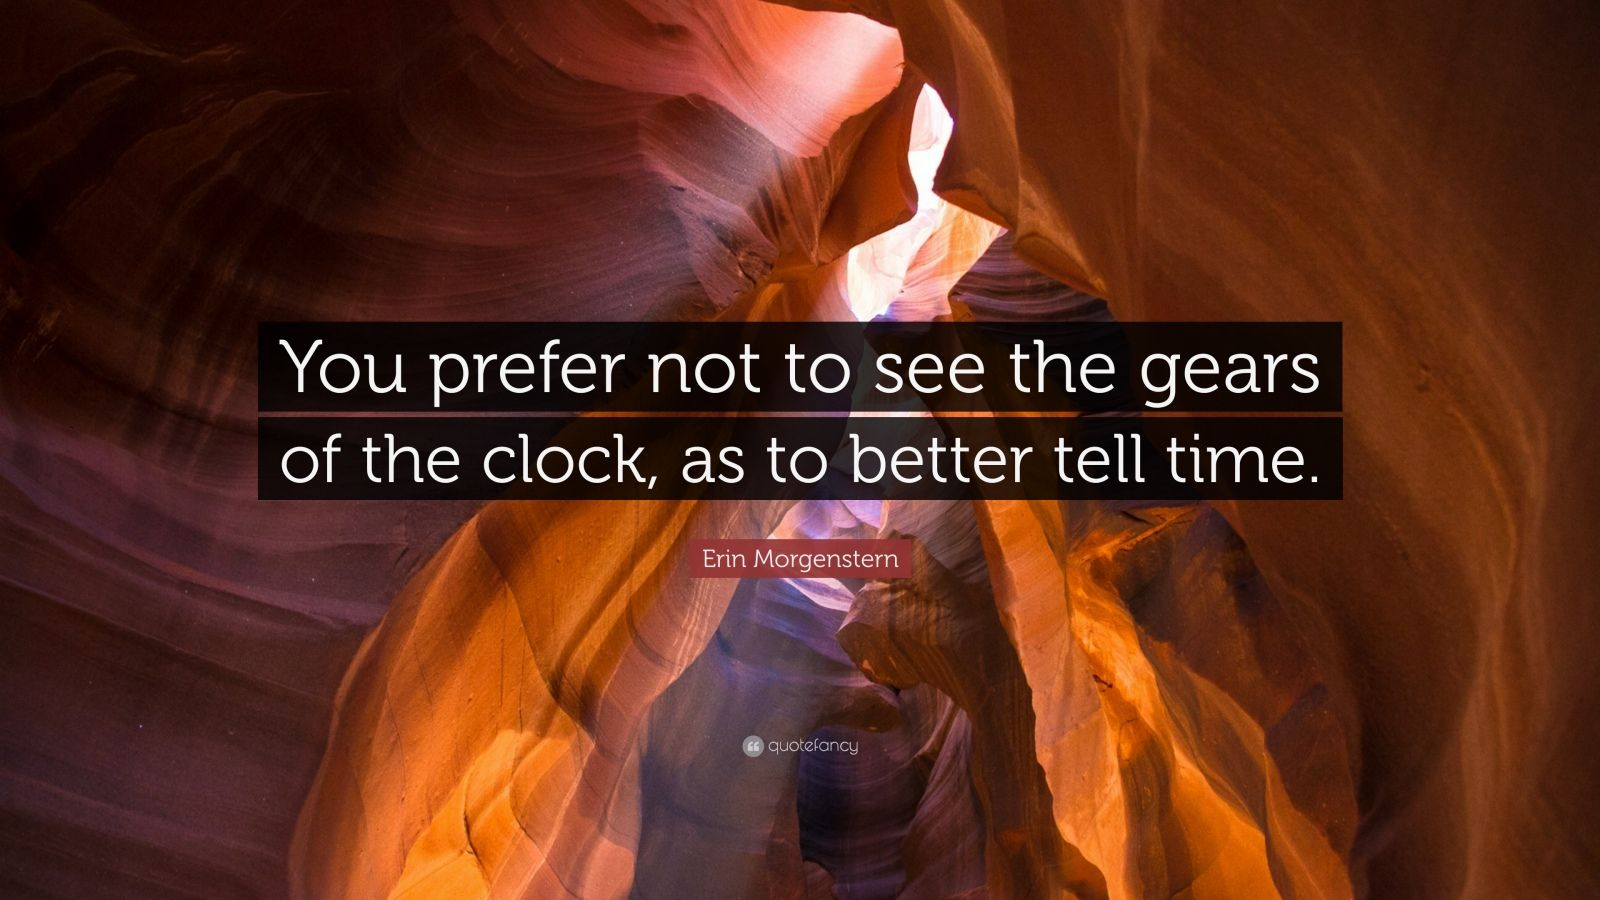 """Erin Morgenstern Quote: """"You prefer not to see the gears of the clock, as to better tell time."""""""